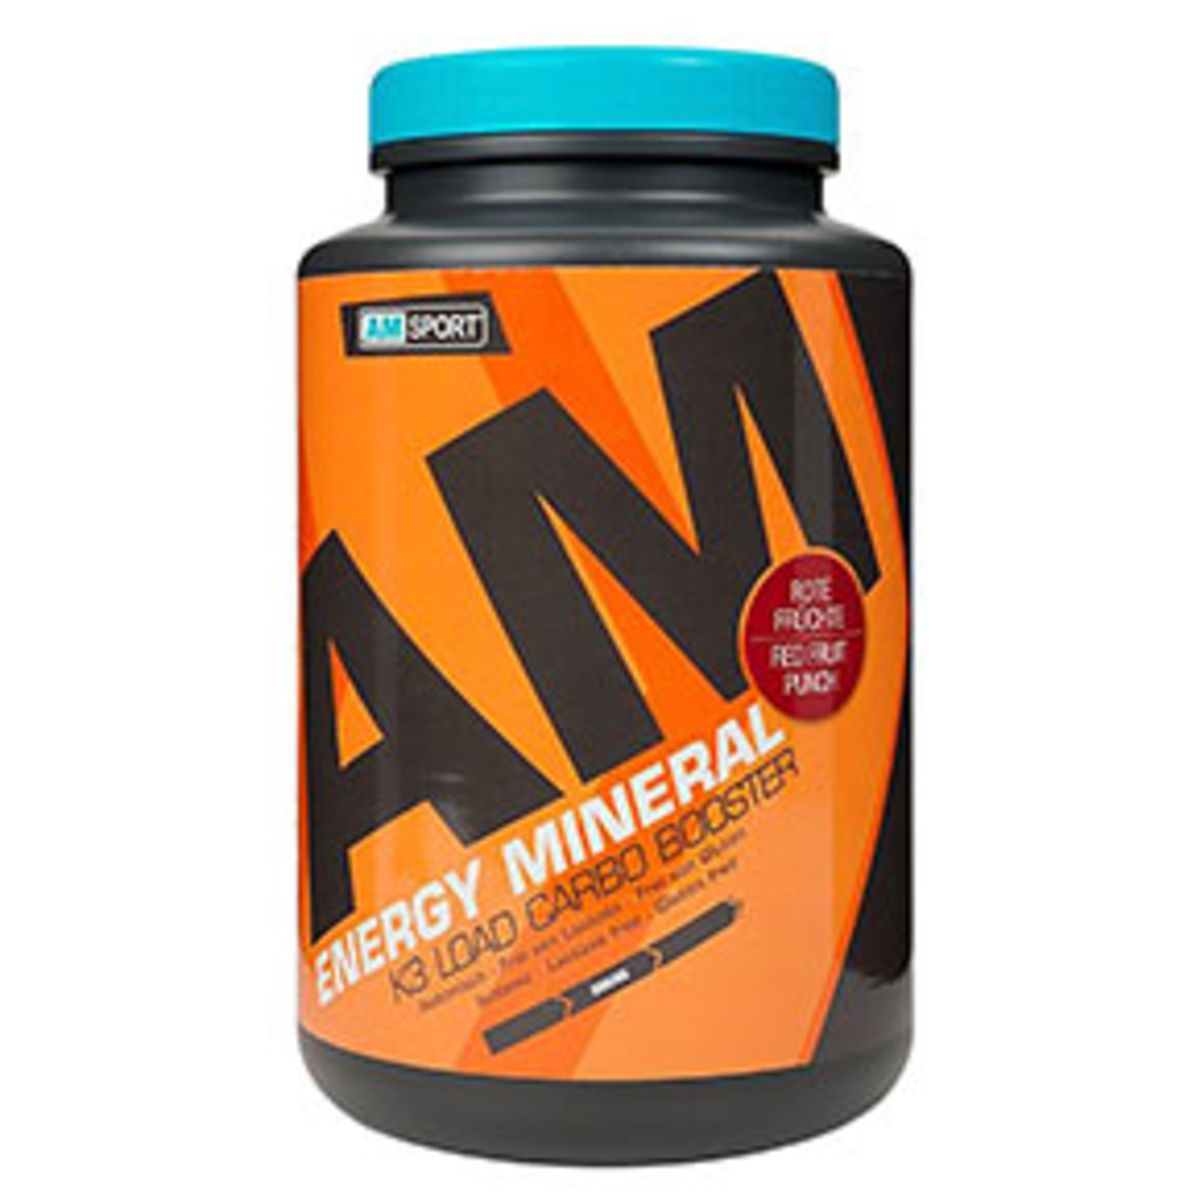 Energy Mineral drink powder